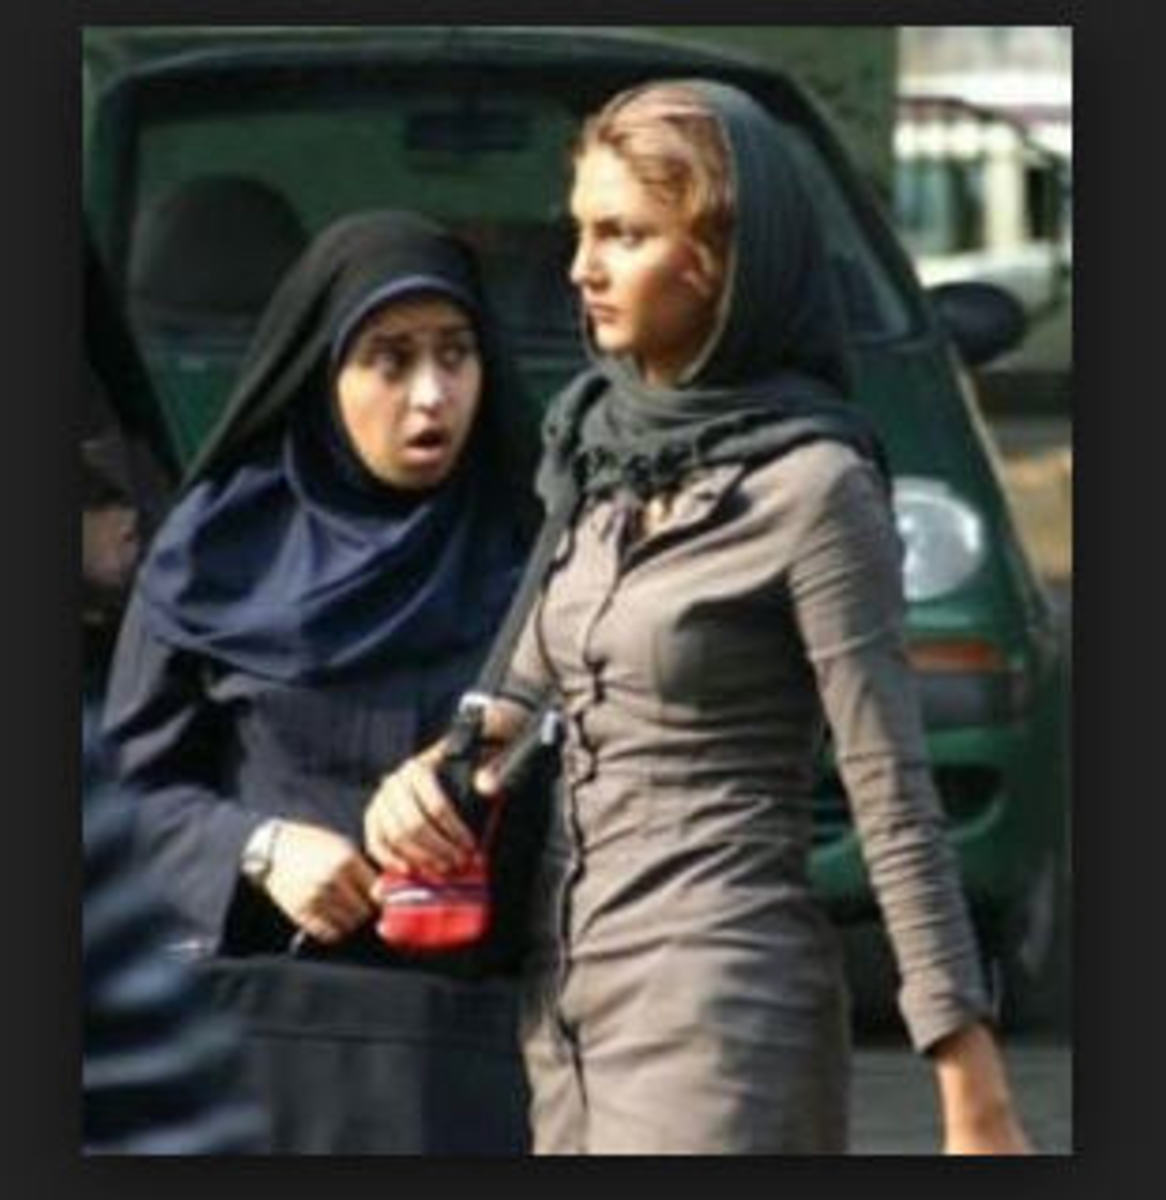 Two Iranian women comply to dress code. The taller one would be a target, however.